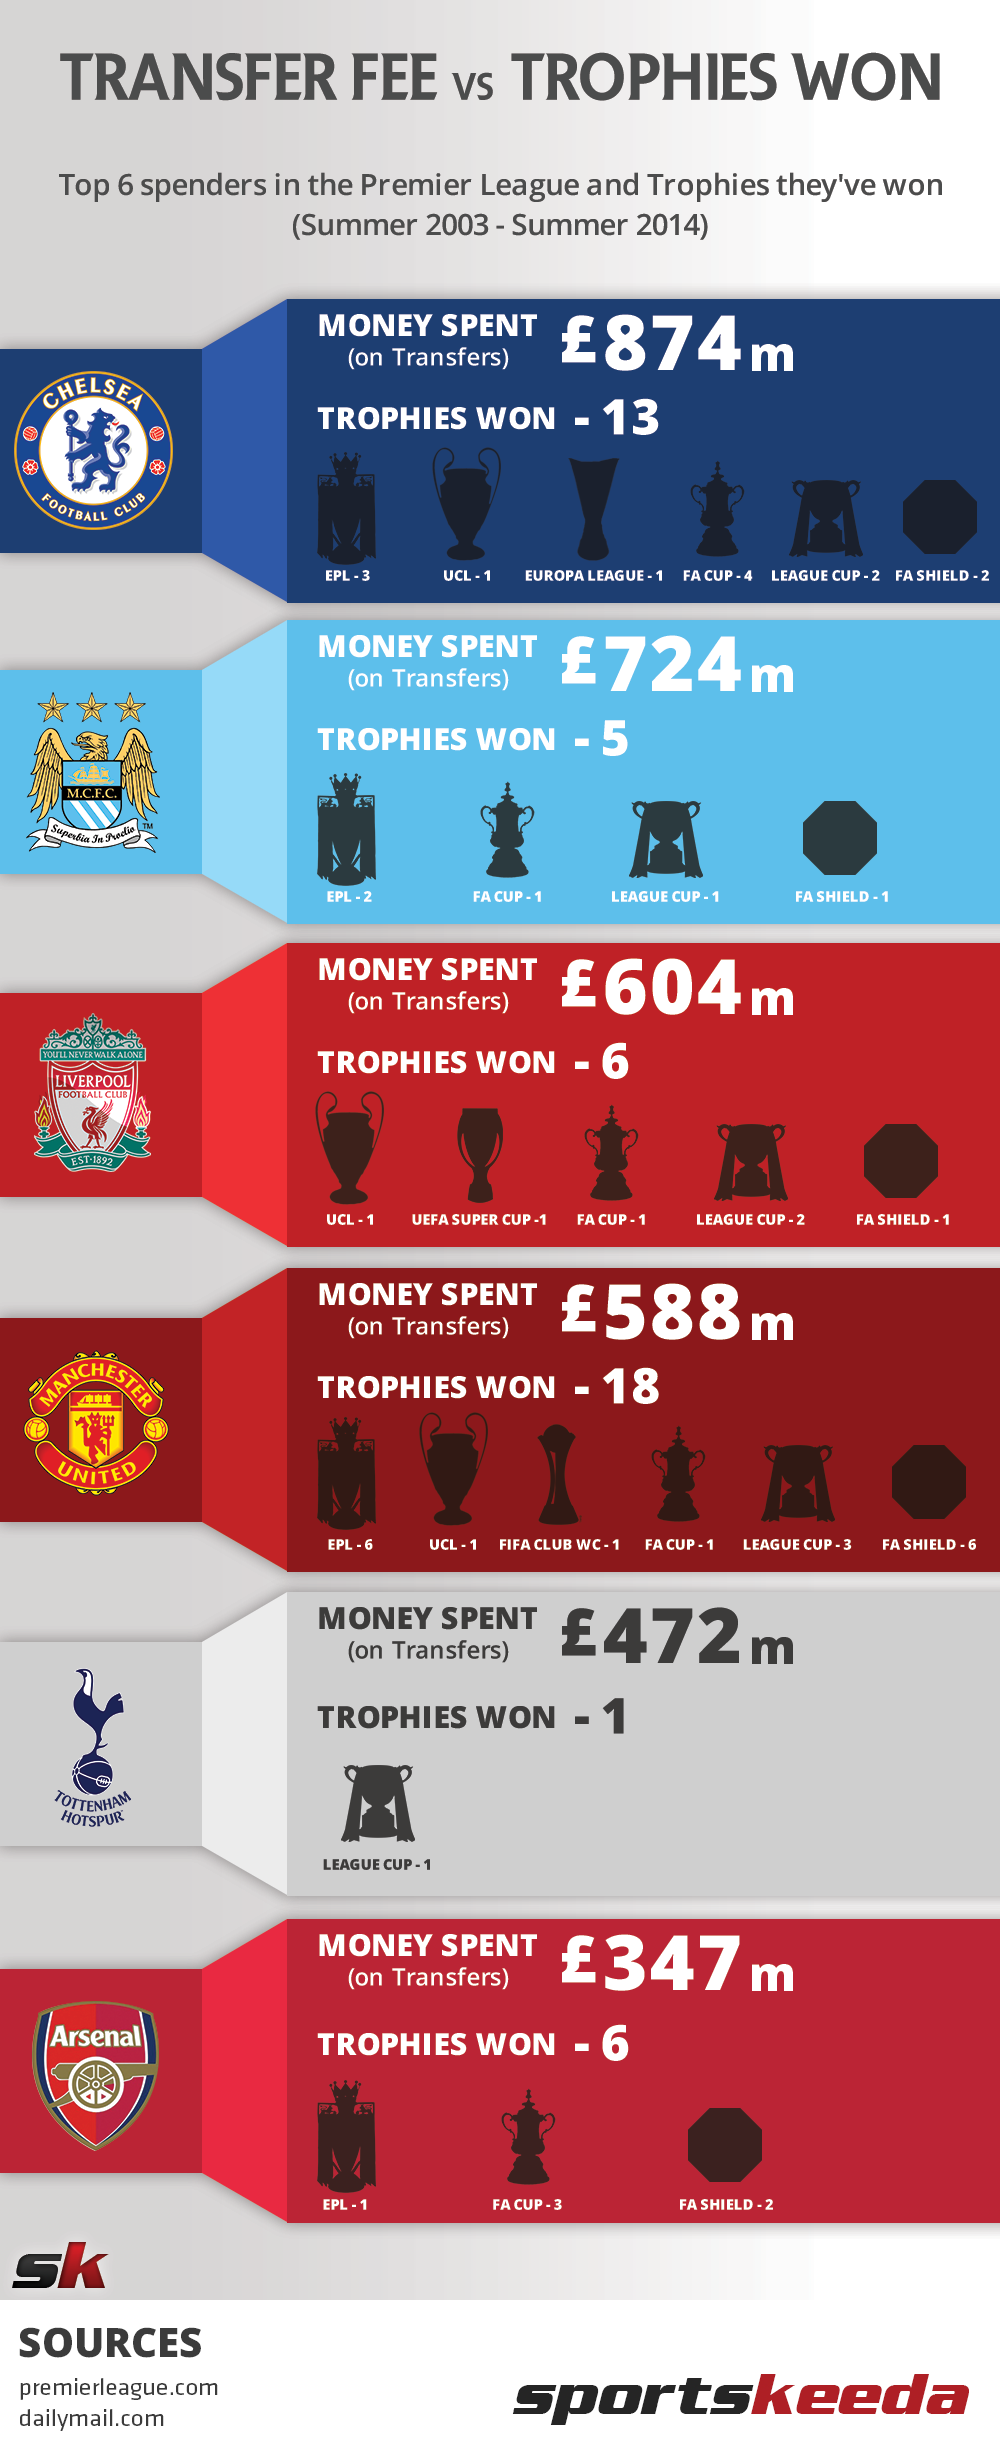 Infographic Comparing The Money Spent By Top Clubs In Premier League And Trophies Theyve Won 2003 2014